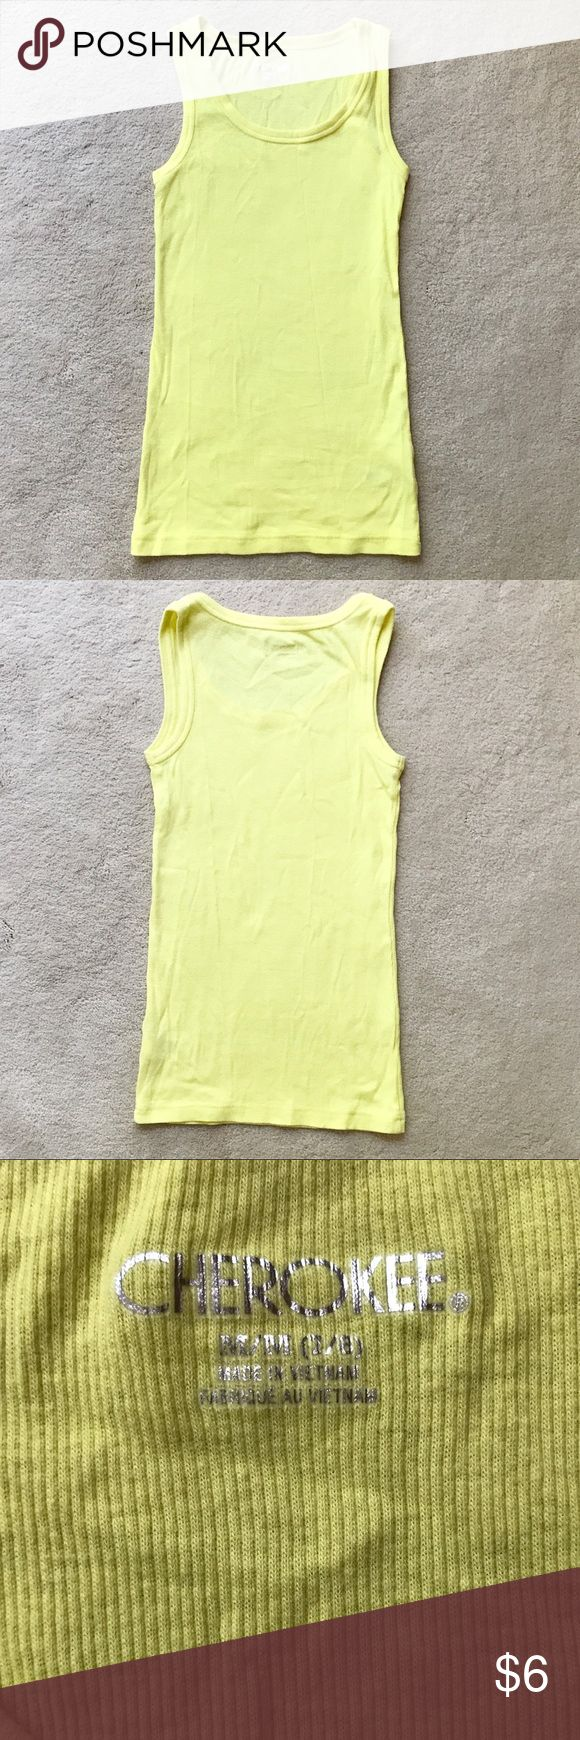 Cherokee Yellow Tank Top What better way to greet the warm weather than with a pop of color? This yellow ribbed tank top will go with everything. It is made of 95% cotton and 5% spandex. It is a medium (7-8). Bundle and save 30%. Cherokee Shirts & Tops Tank Tops